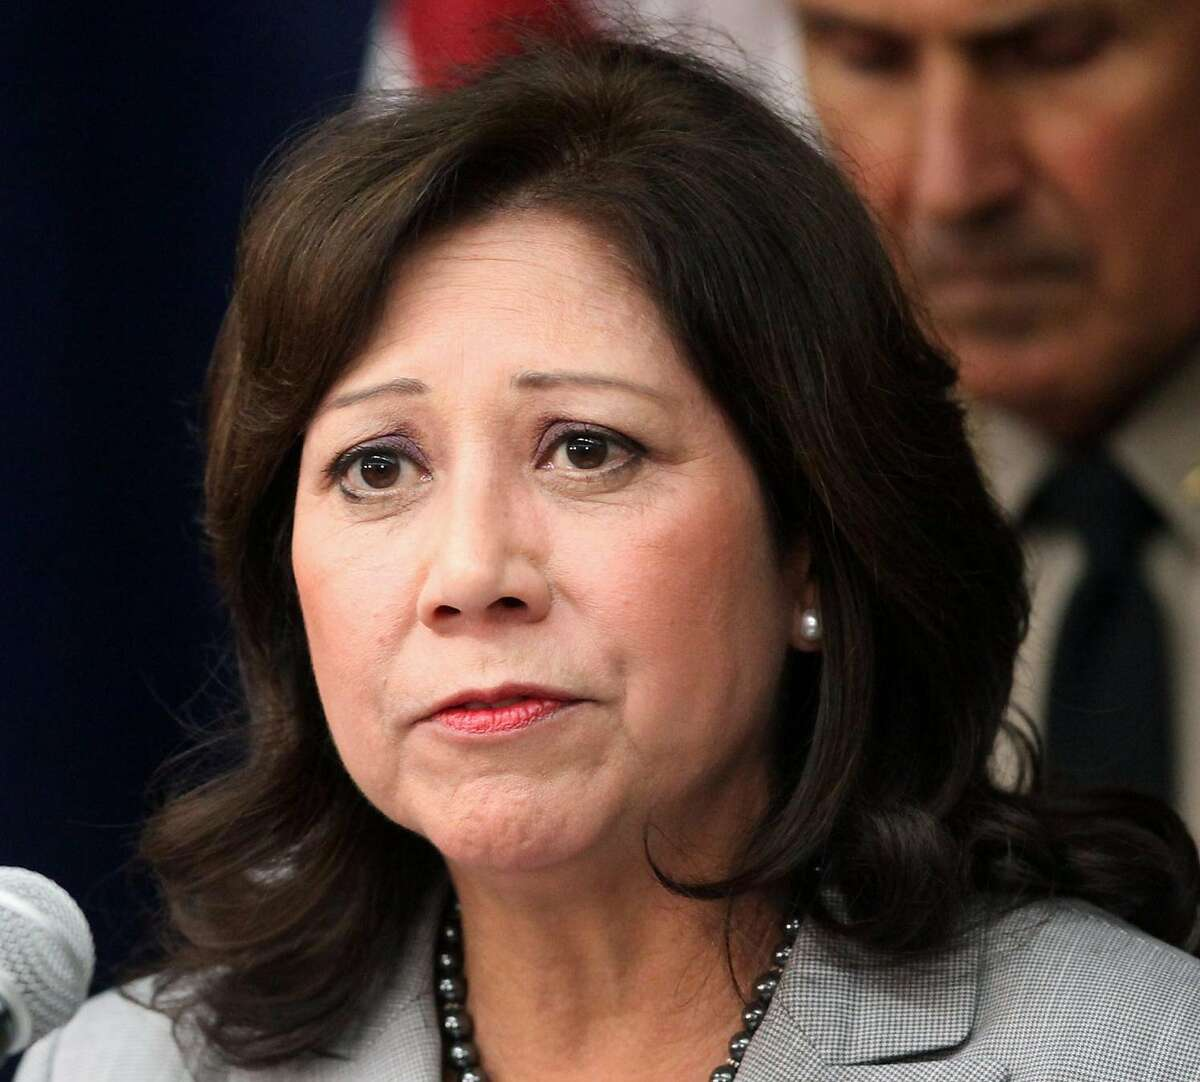 FILE - This Nov. 16, 2012 file photo shows Labor Secretary Hilda Solis speaking in Los Angeles. Solis has told colleagues she is resigning from Obama administration. (AP Photo/Richard Vogel, File)